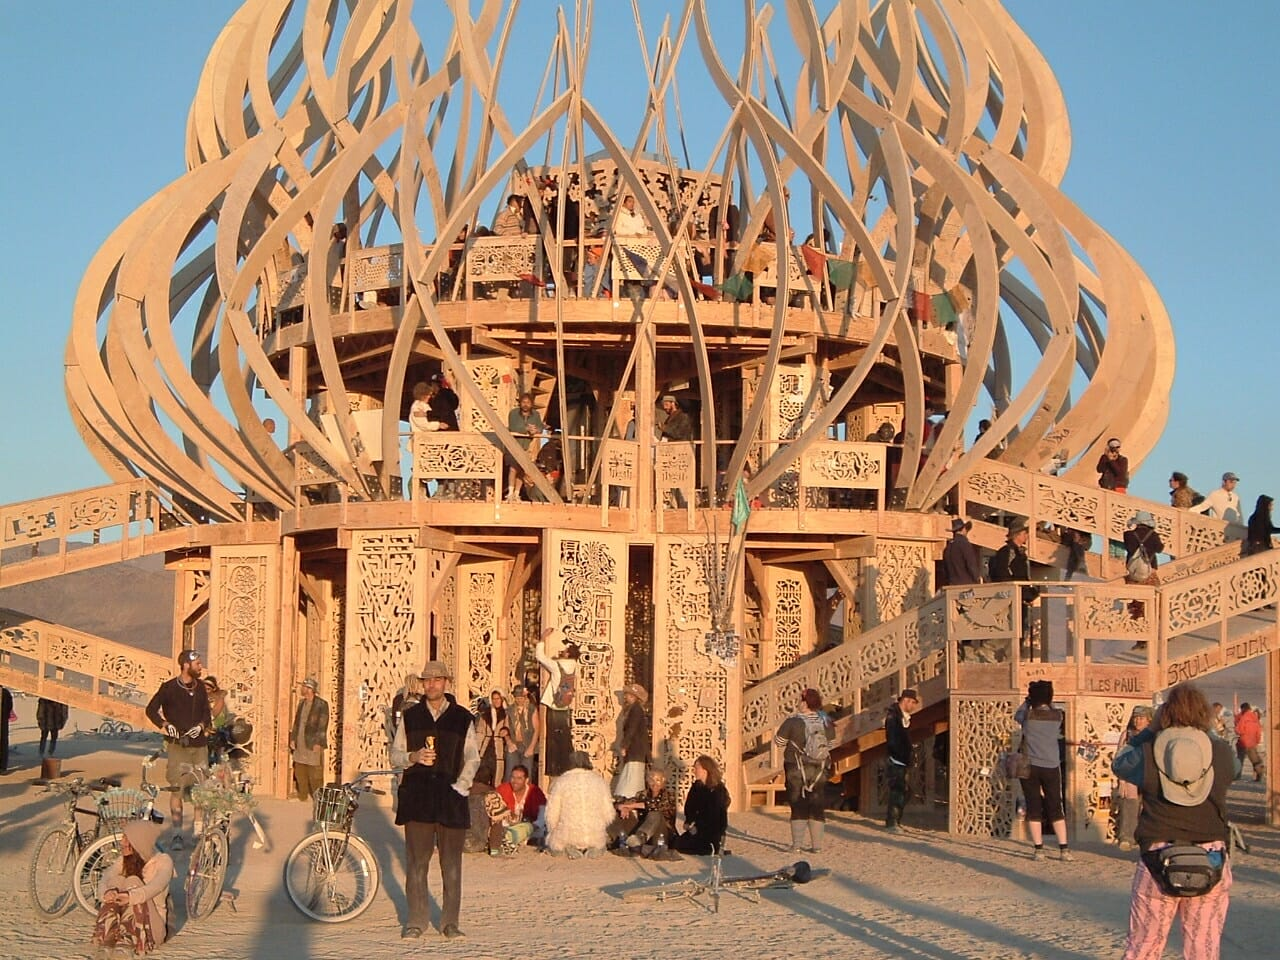 Burning Man for the Solo Traveler